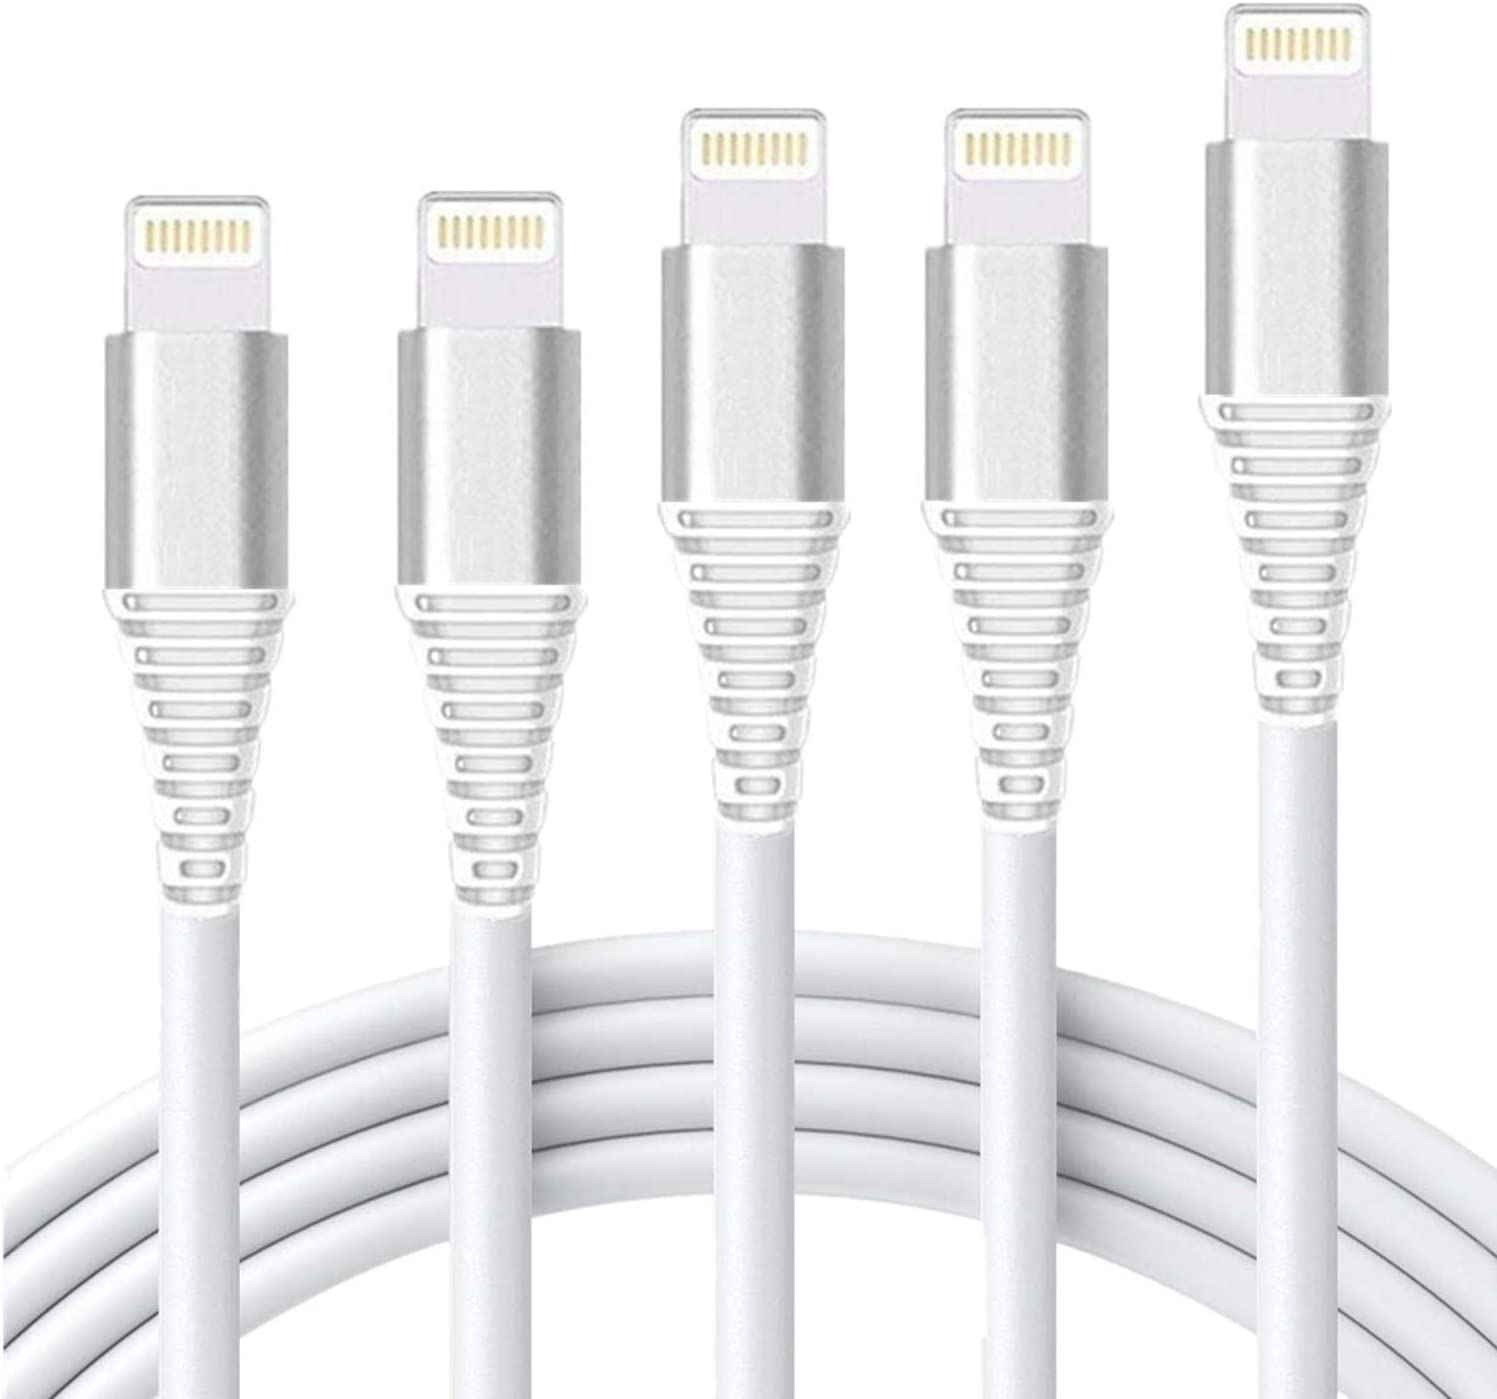 iPhone Charger Cable 5Pack 3FT/6FT/10Feet ROSYCLO MFi Certified Lightning Cord Metal Nylon USB Fast Charging Cord Long Data Line Wire Compatible iPhone11ProXS/Max/XR/X/8/7plus/6S/iPad/iPod/IOS Silver